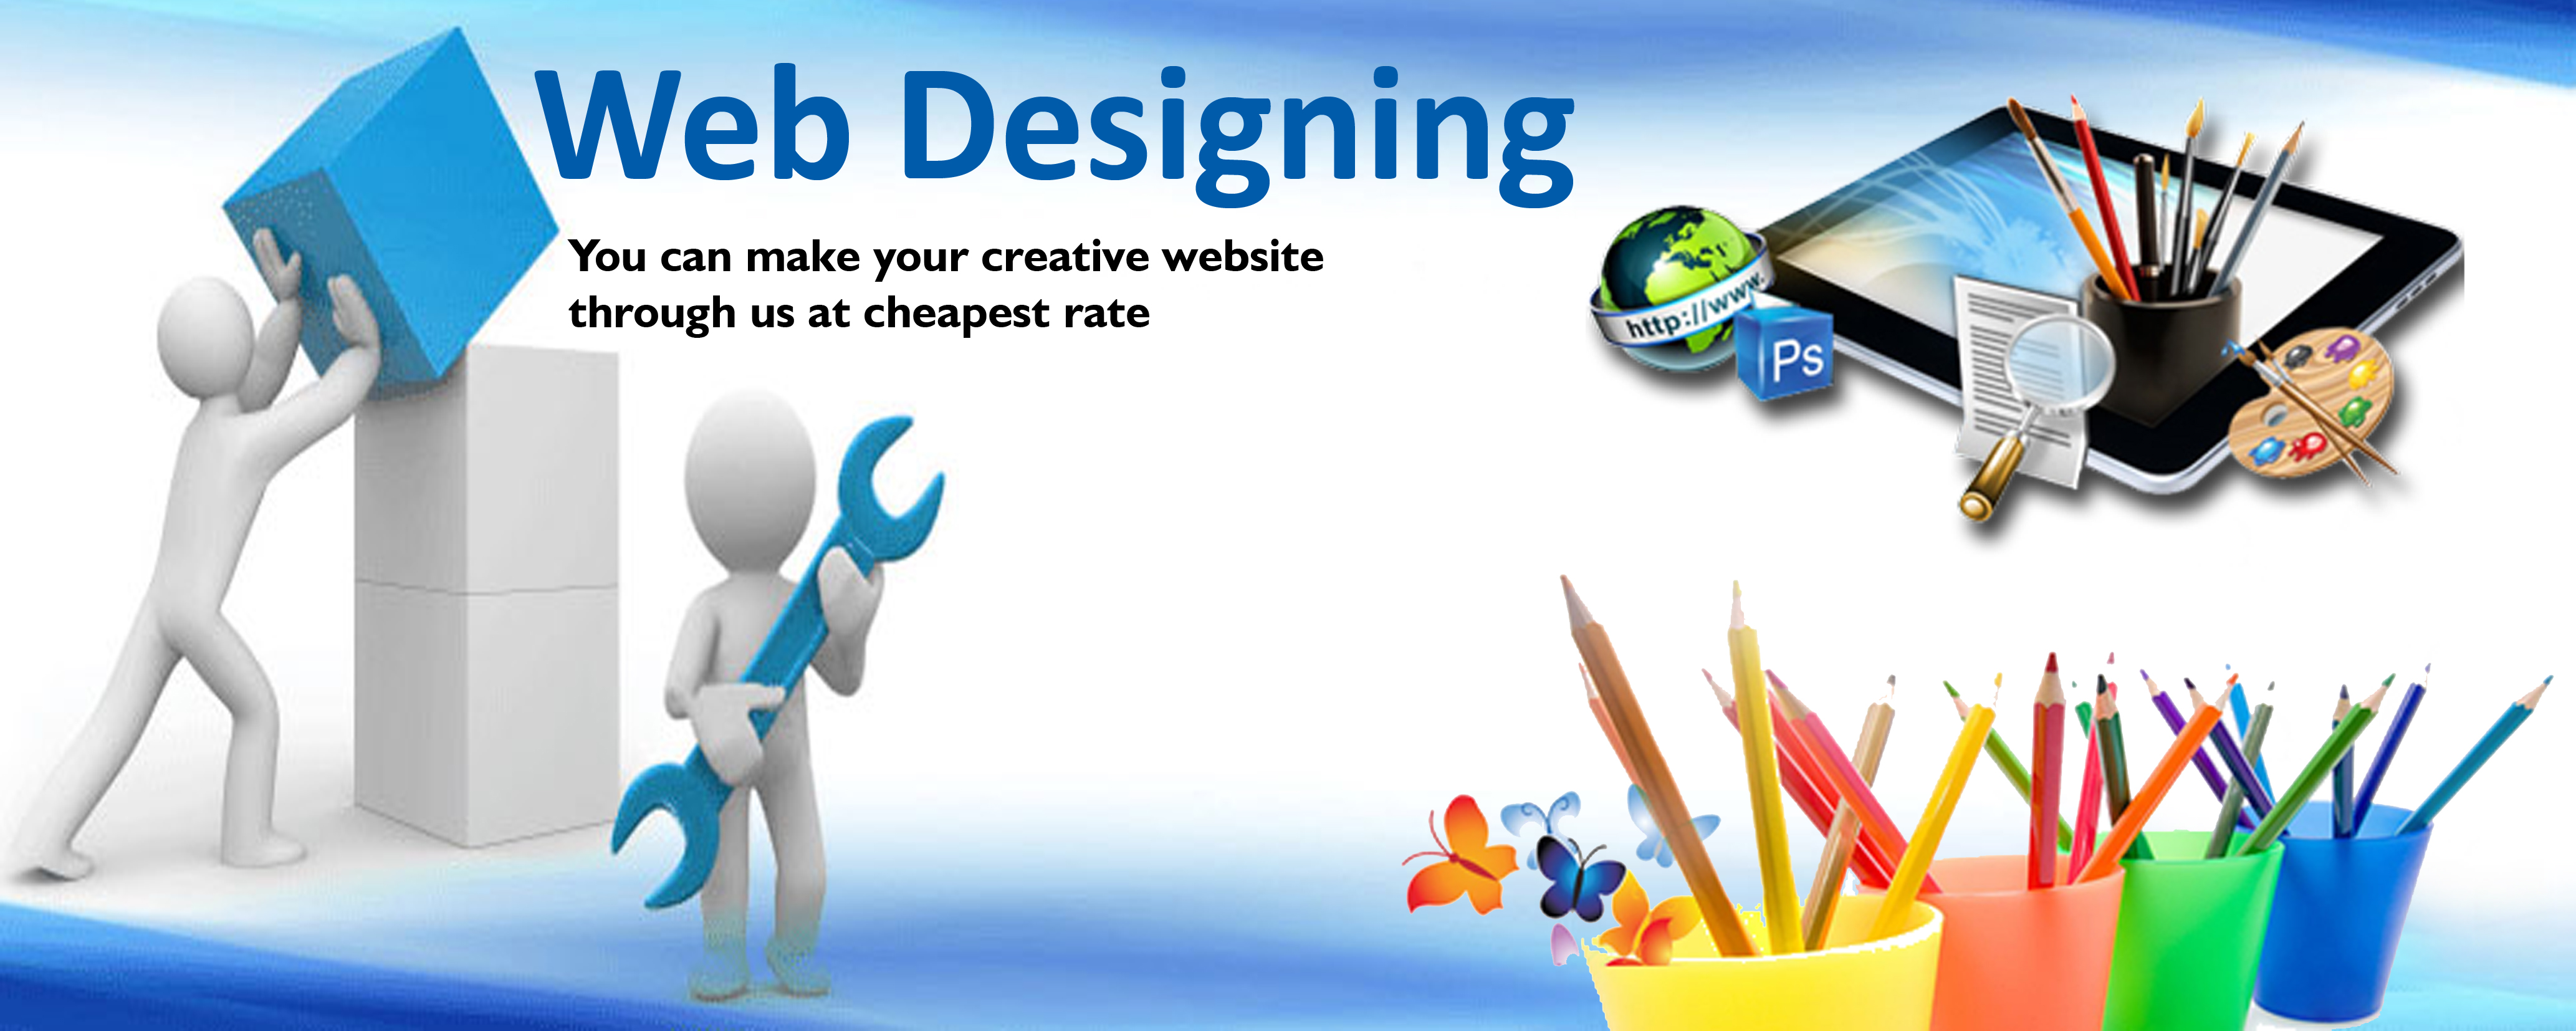 Graphic Web Design Training In Chennai Graphic Web Design Training Institute In Chennai